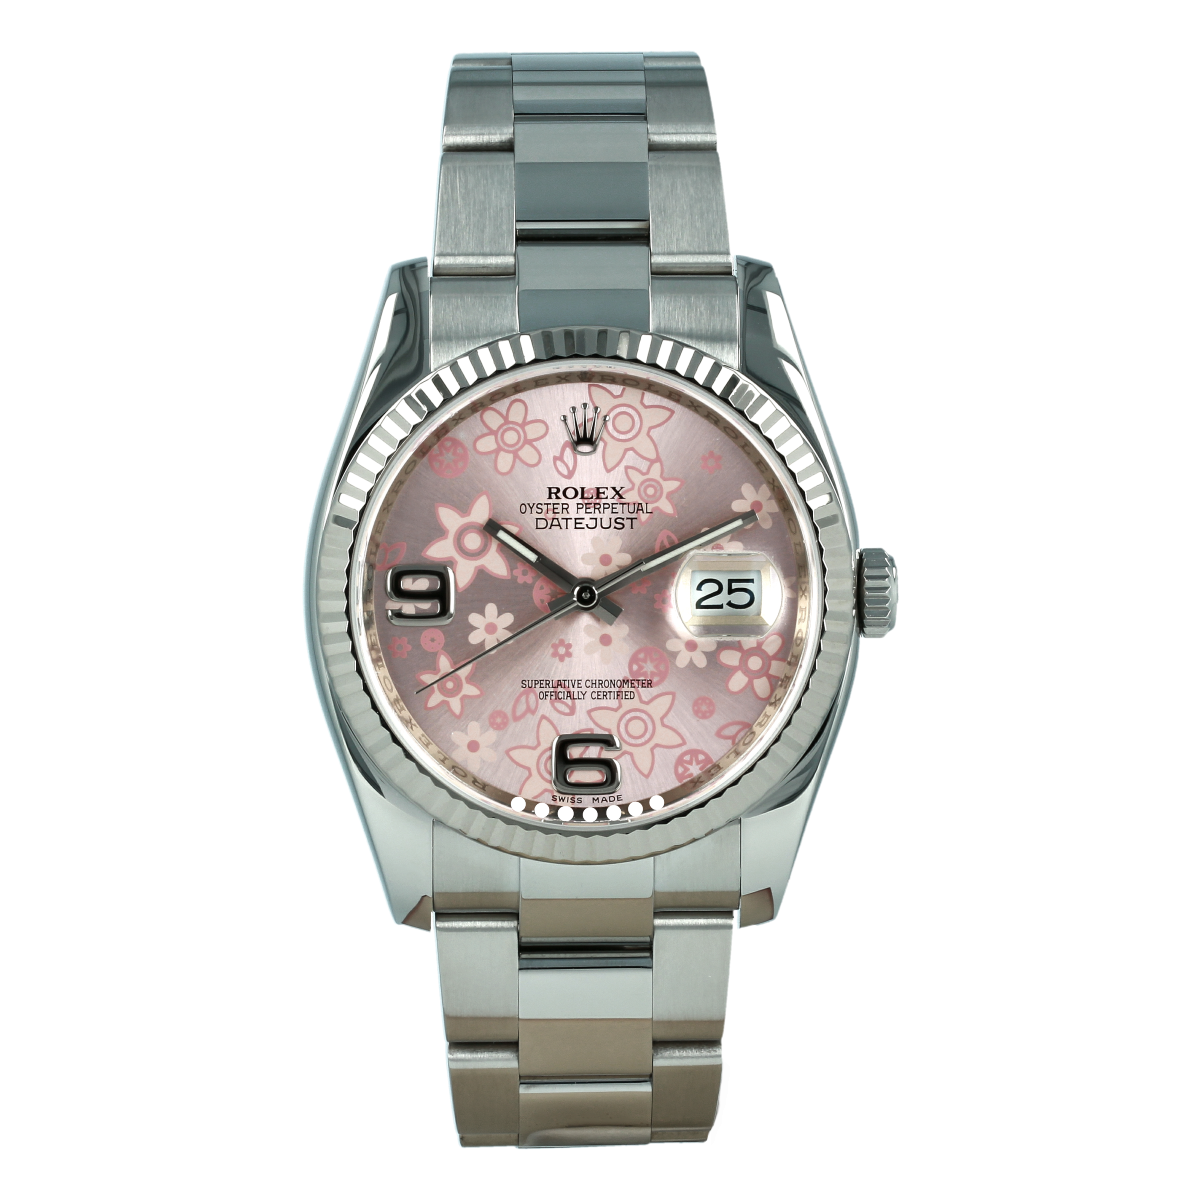 Rolex Datejust 116234 36mm Pink Floral Dial | Buy pre-owned Rolex watch